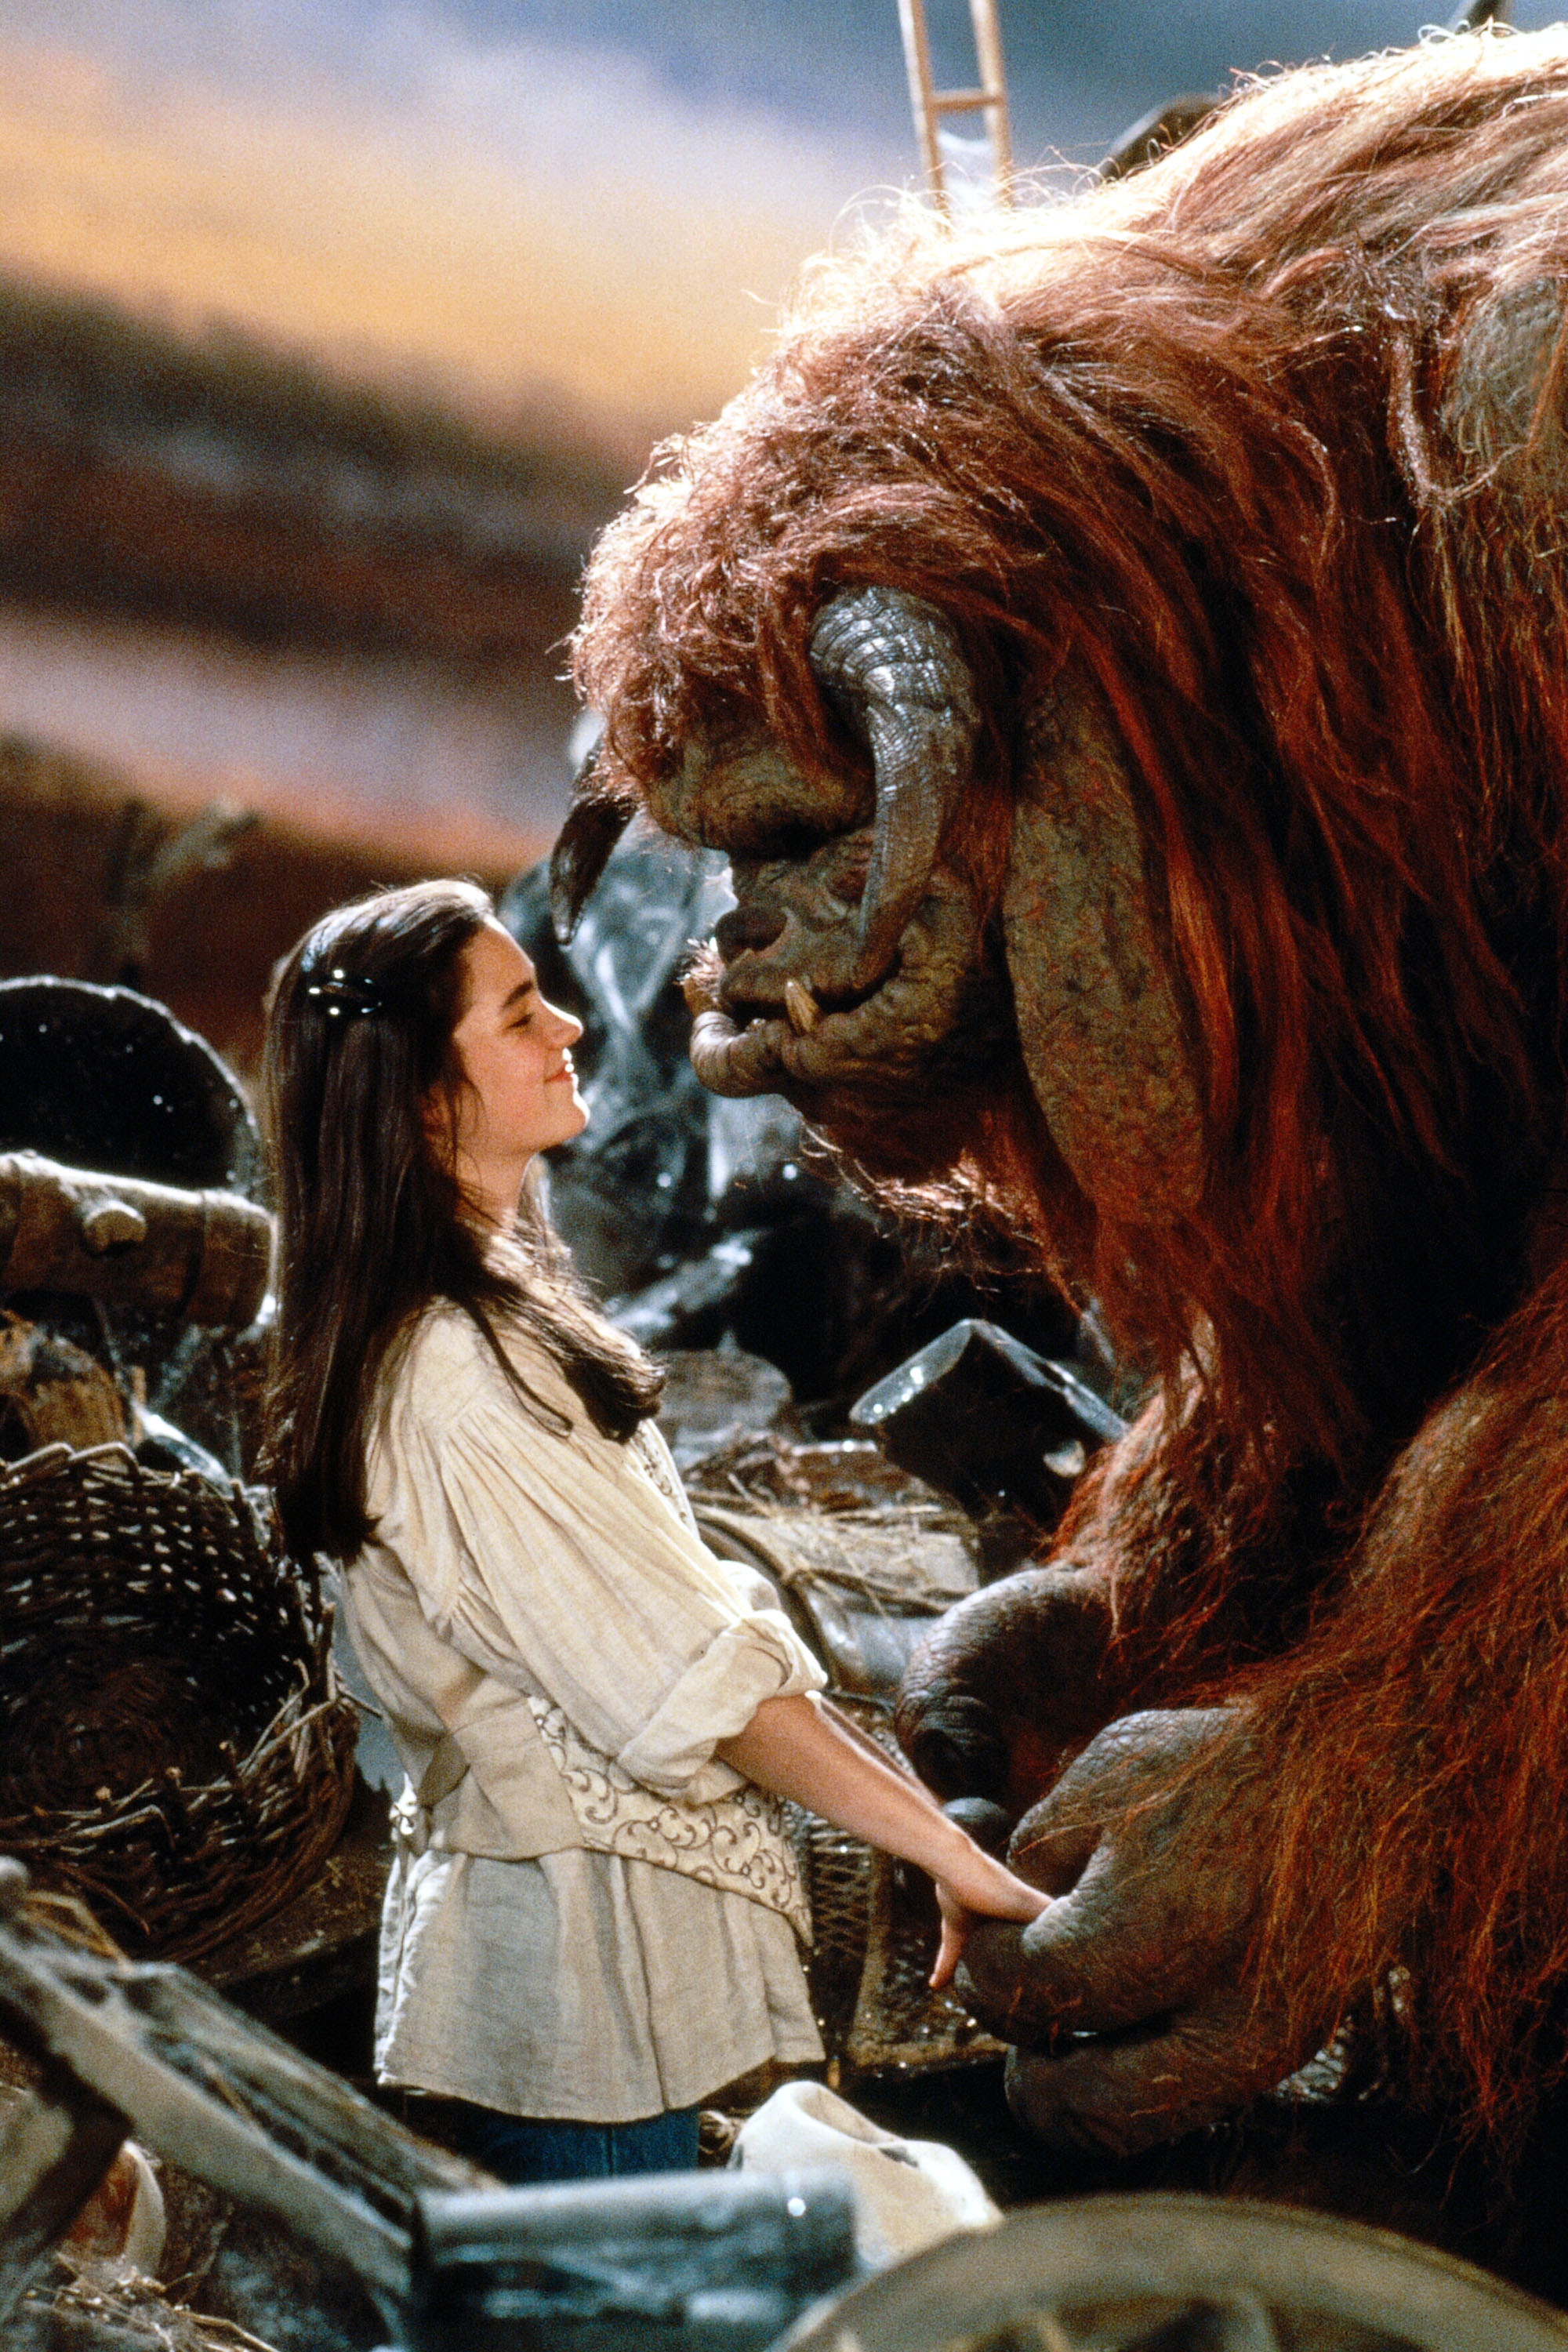 Labyrinth Film